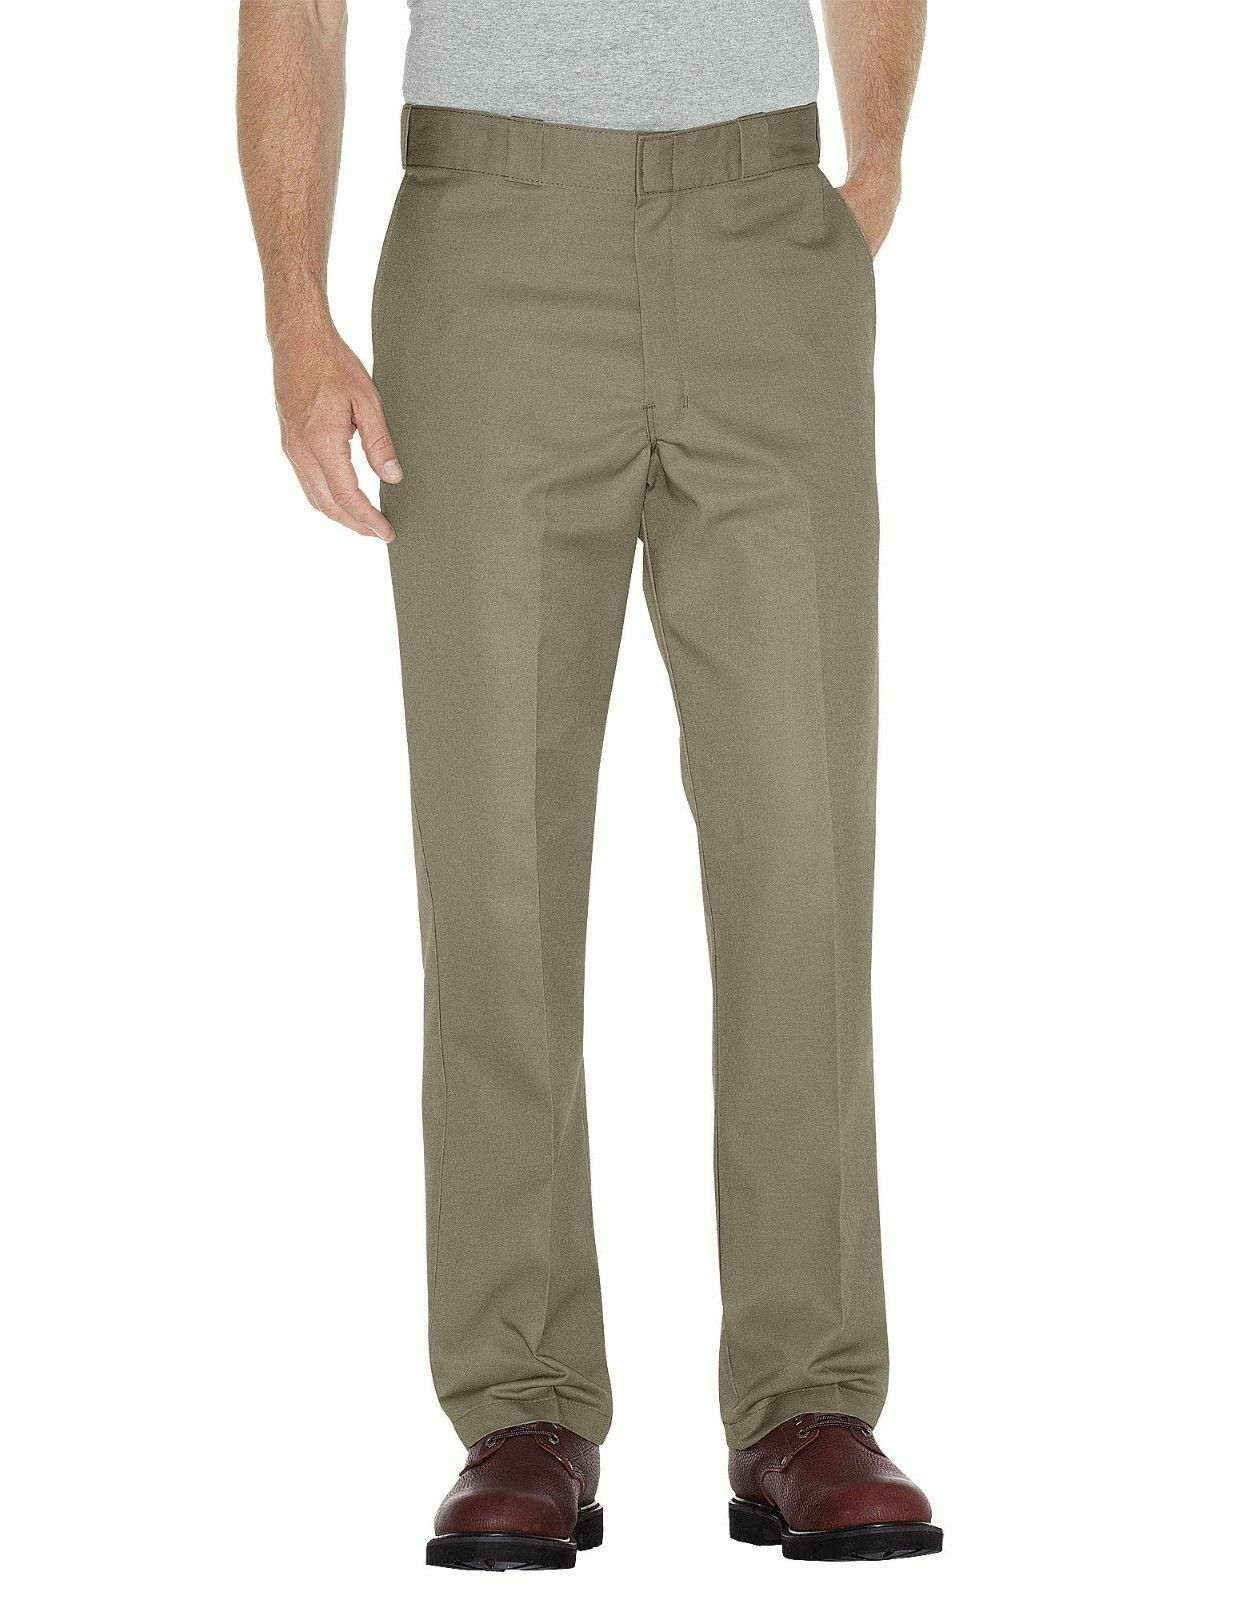 Primary image for DICKIES Work Pants~Tan Khaki~Loose Fit~28W x 32L~Double Knee~Cell Phone Pocket